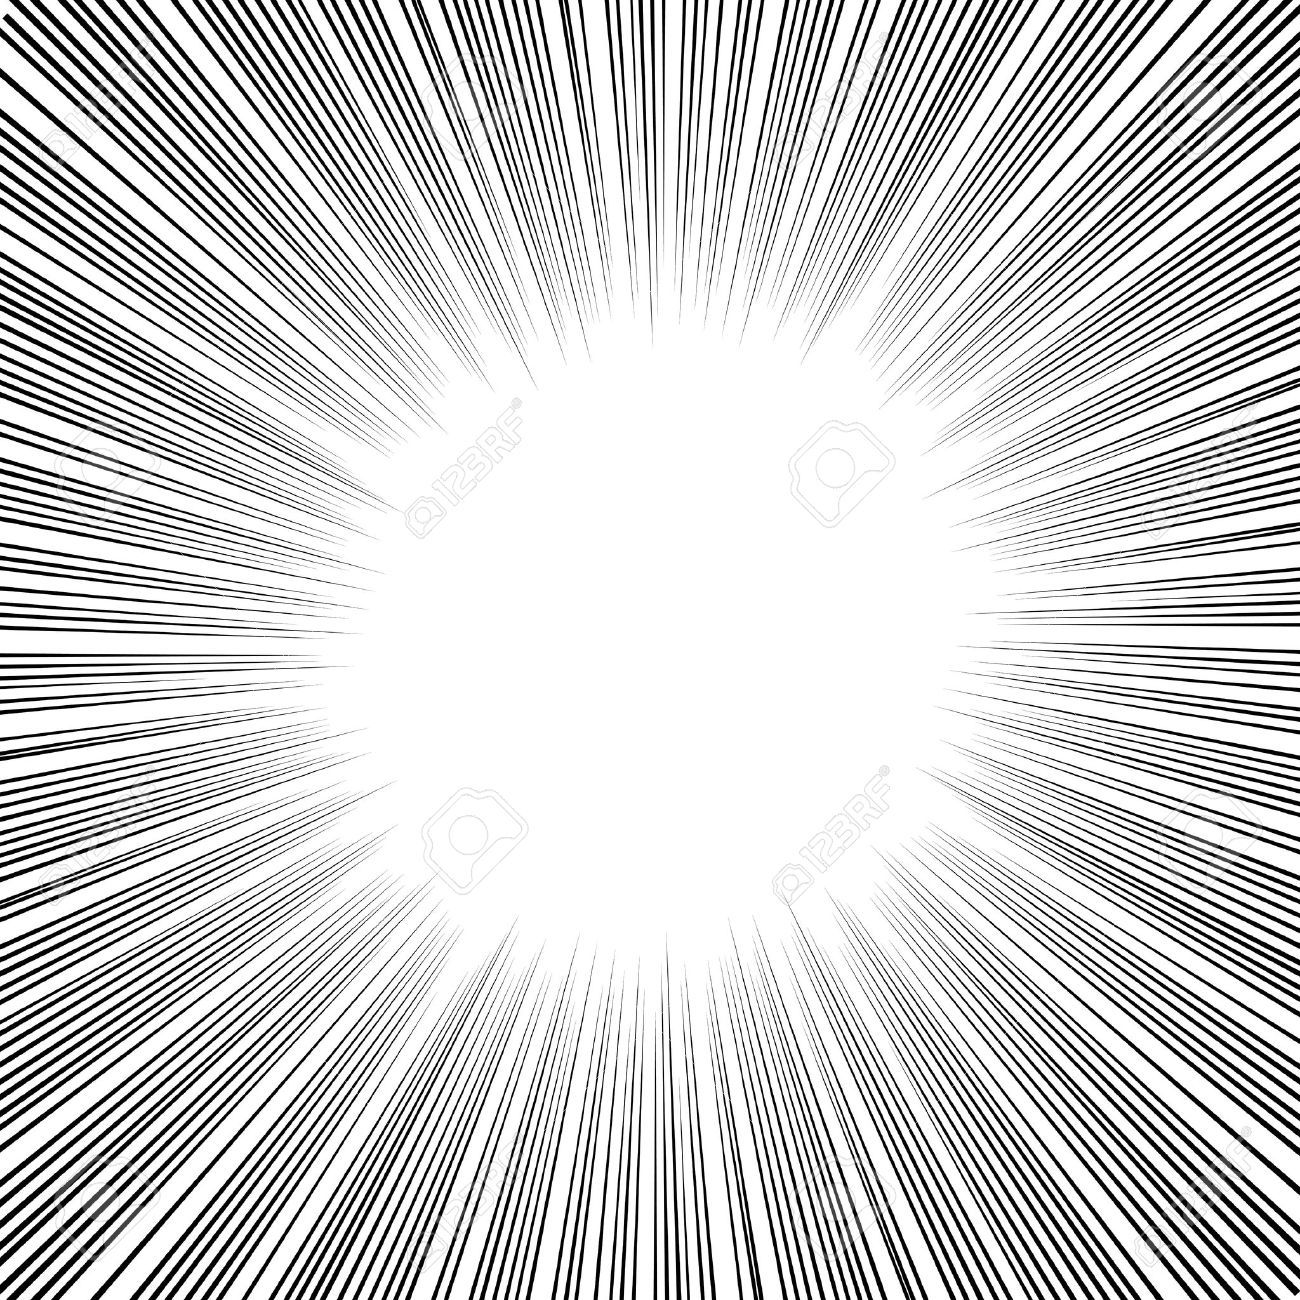 21536036 Radial Speed Lines Graphic Effects For Use In Comic Books Manga And Illustration Stock Vector Jpg 1300 1300 Screentone Comic Book Layout Manga Comics